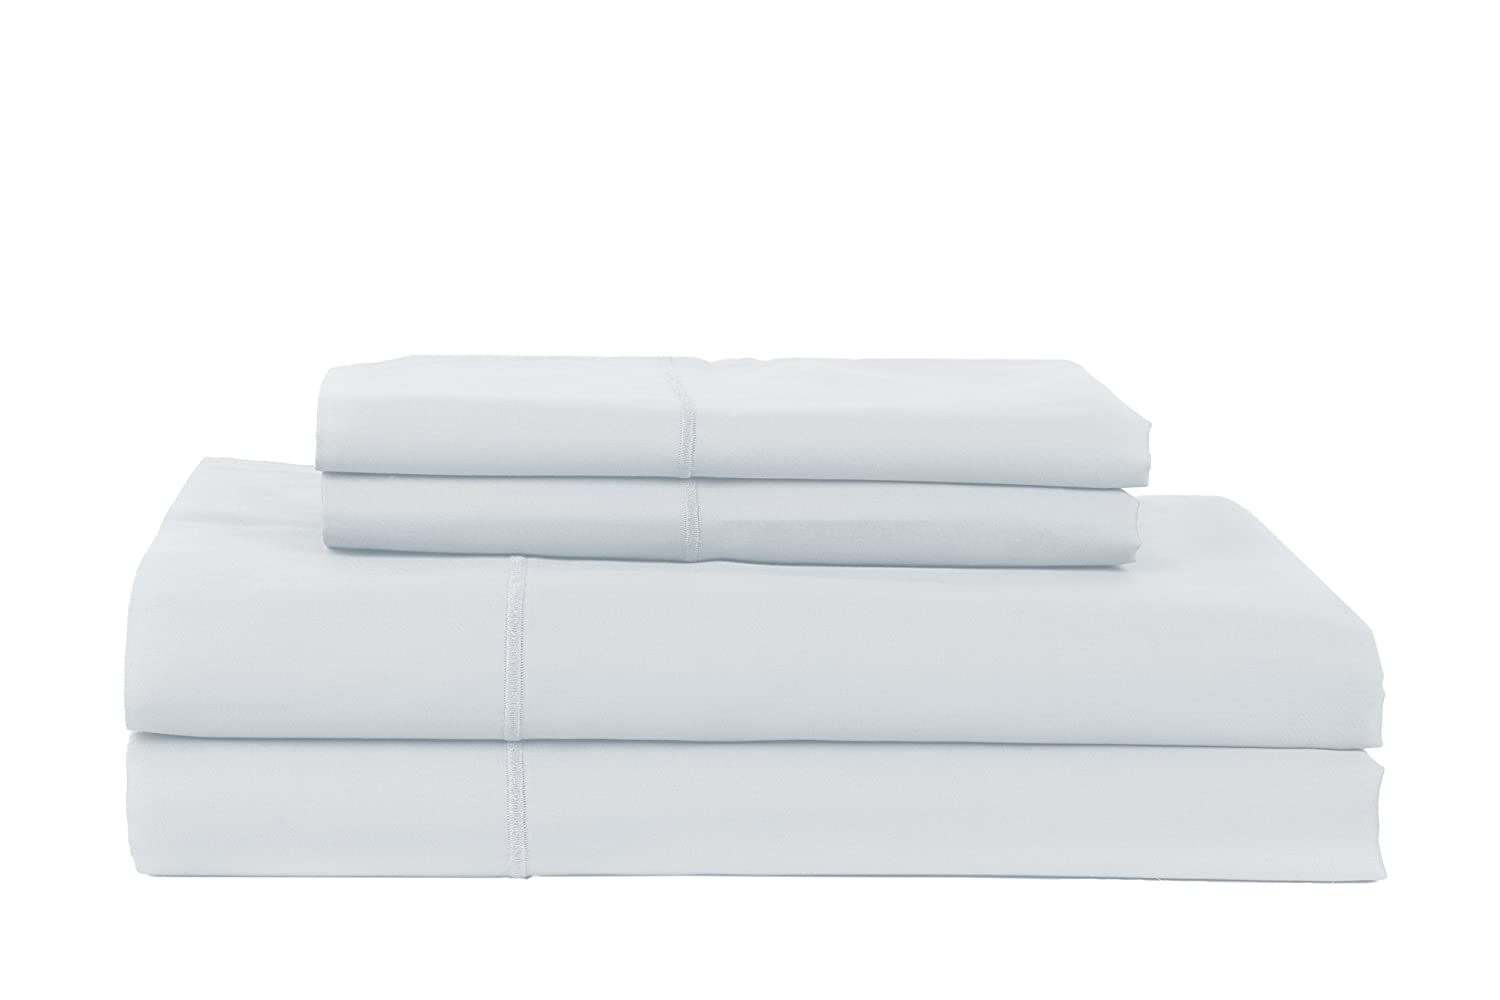 Perthshire Platinum Collection Solid 100/% Egyptian Cotton Sateen Sheet Set King White Textile Décor PPC-T840K-PL-SAT-WH-EG